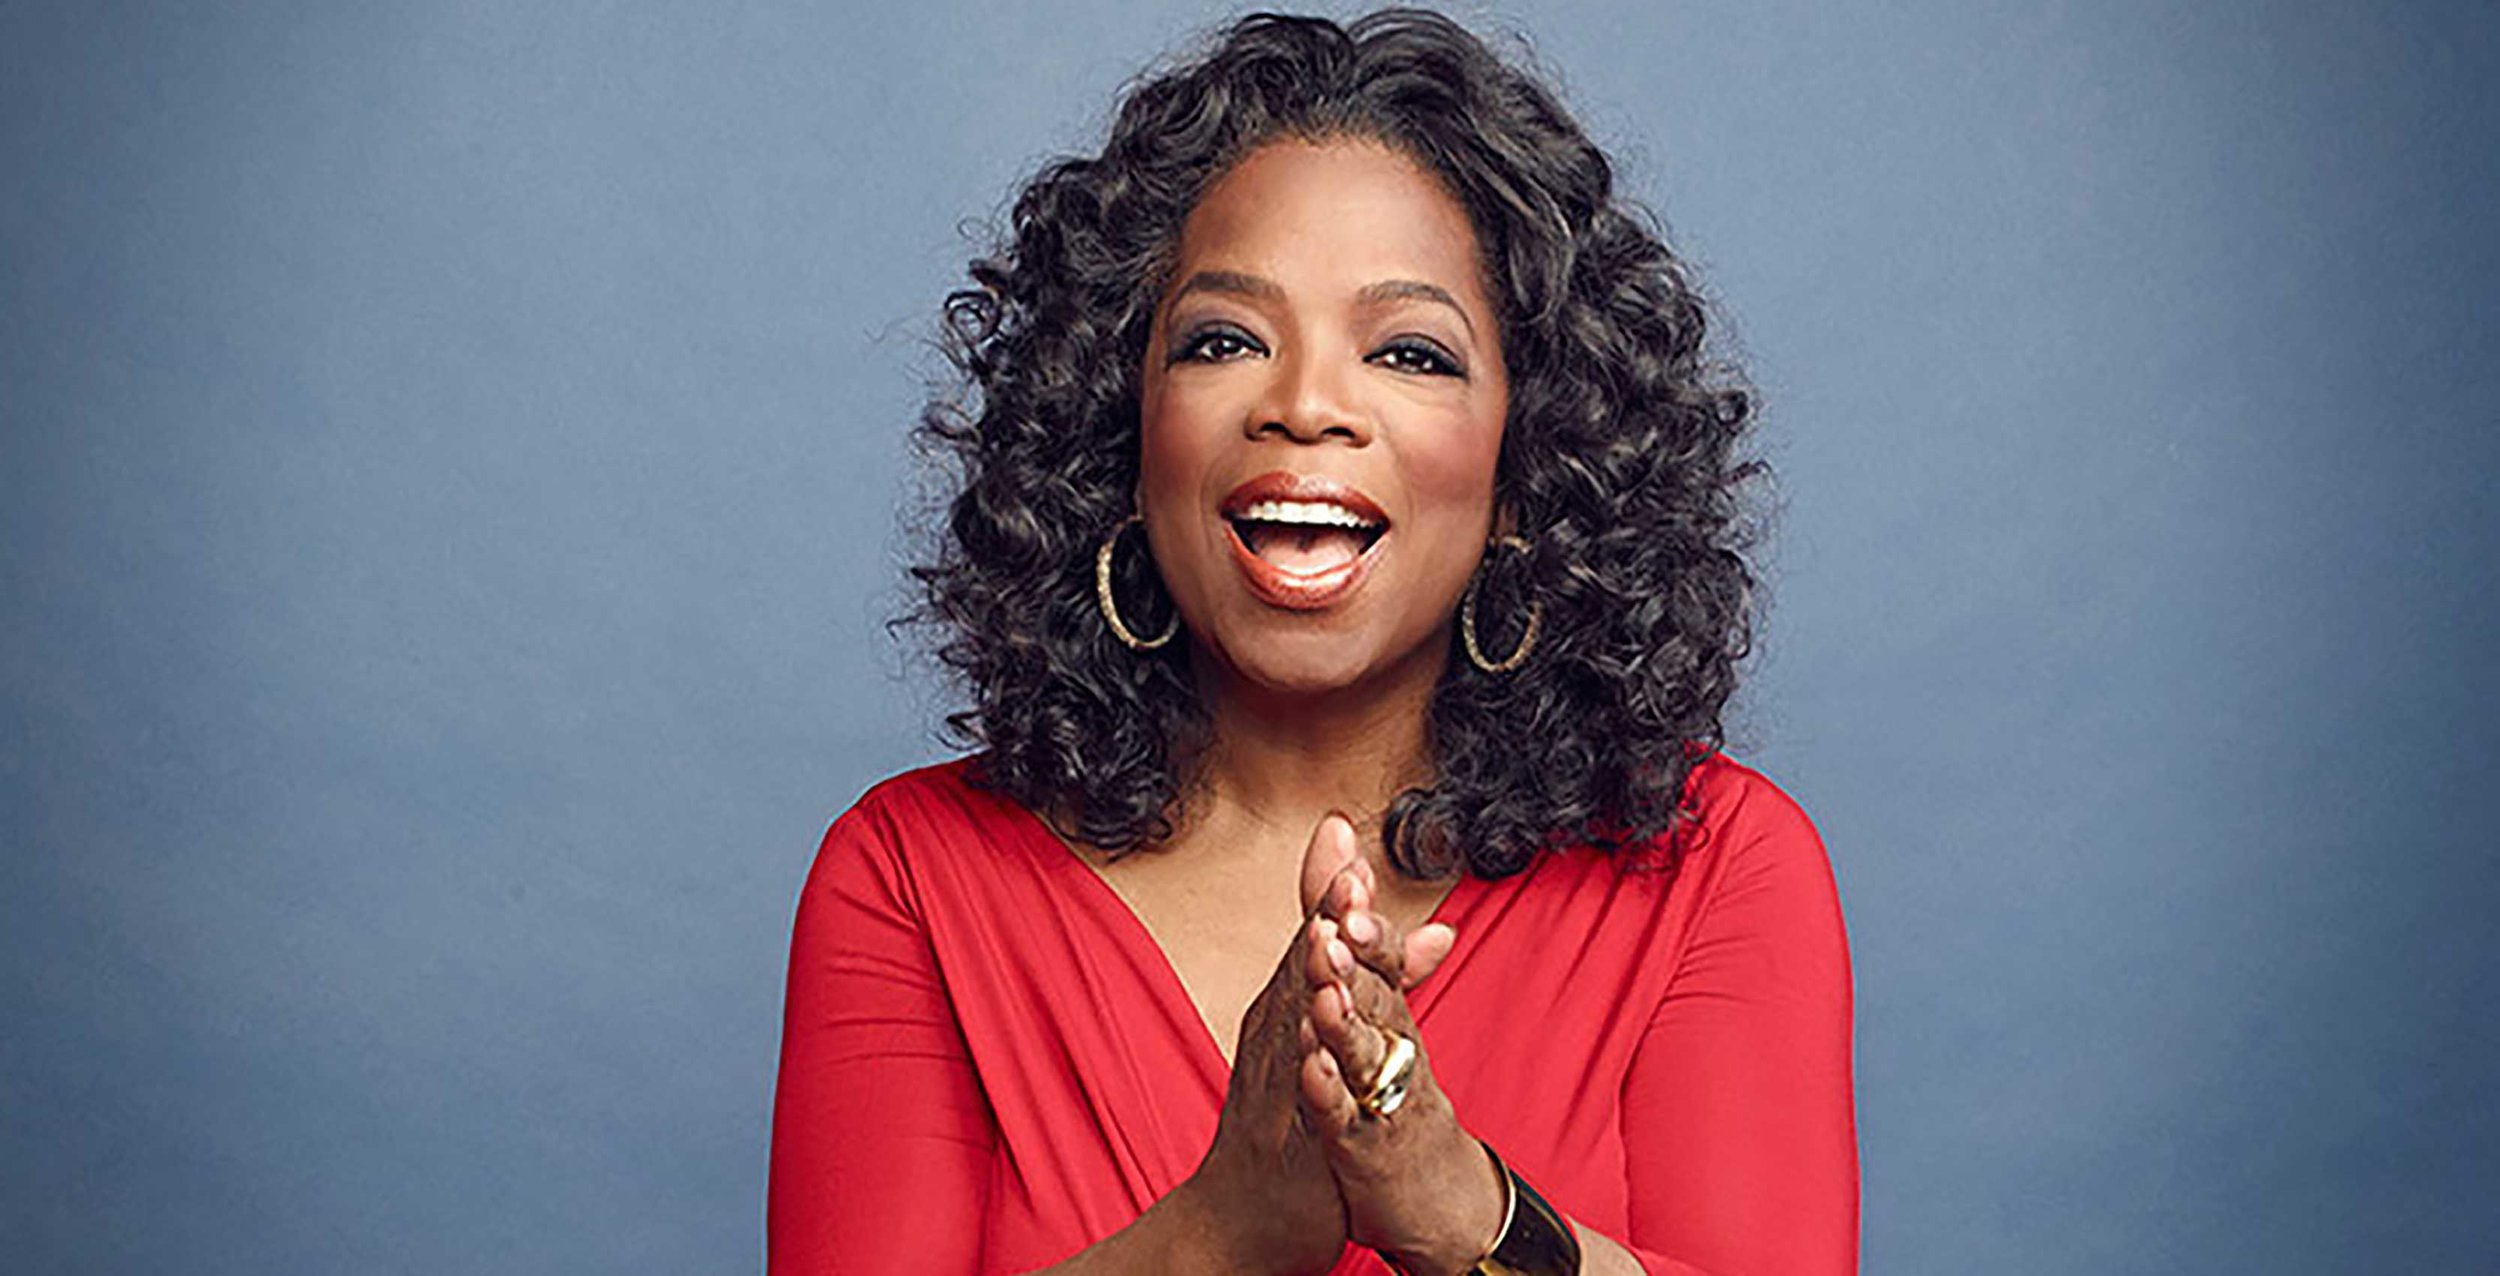 Oprah Winfrey -  Media Executive, Actress, Talk Show Host, Television Producer and Philanthropist